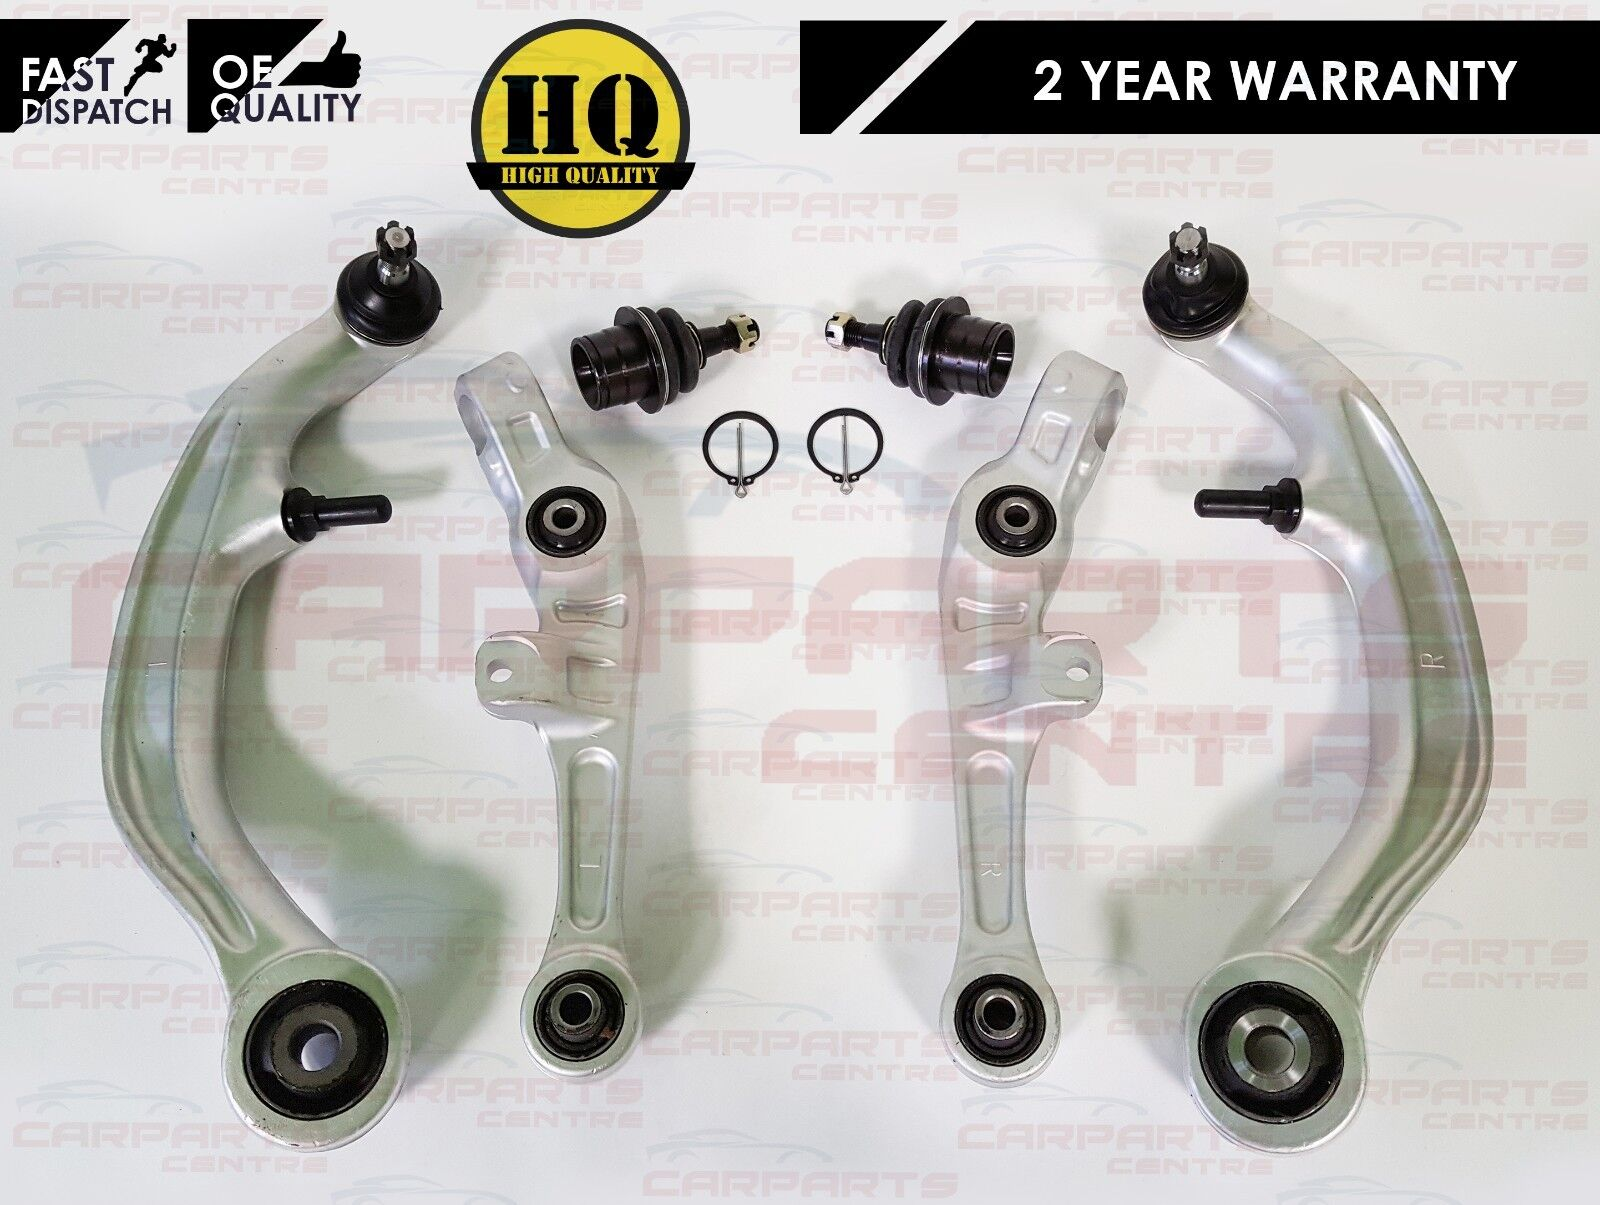 FOR NISSAN 350Z FRONT LOWER REAR FRONT SUSPENSION WISHBONE CONTROL ARMS LH RH